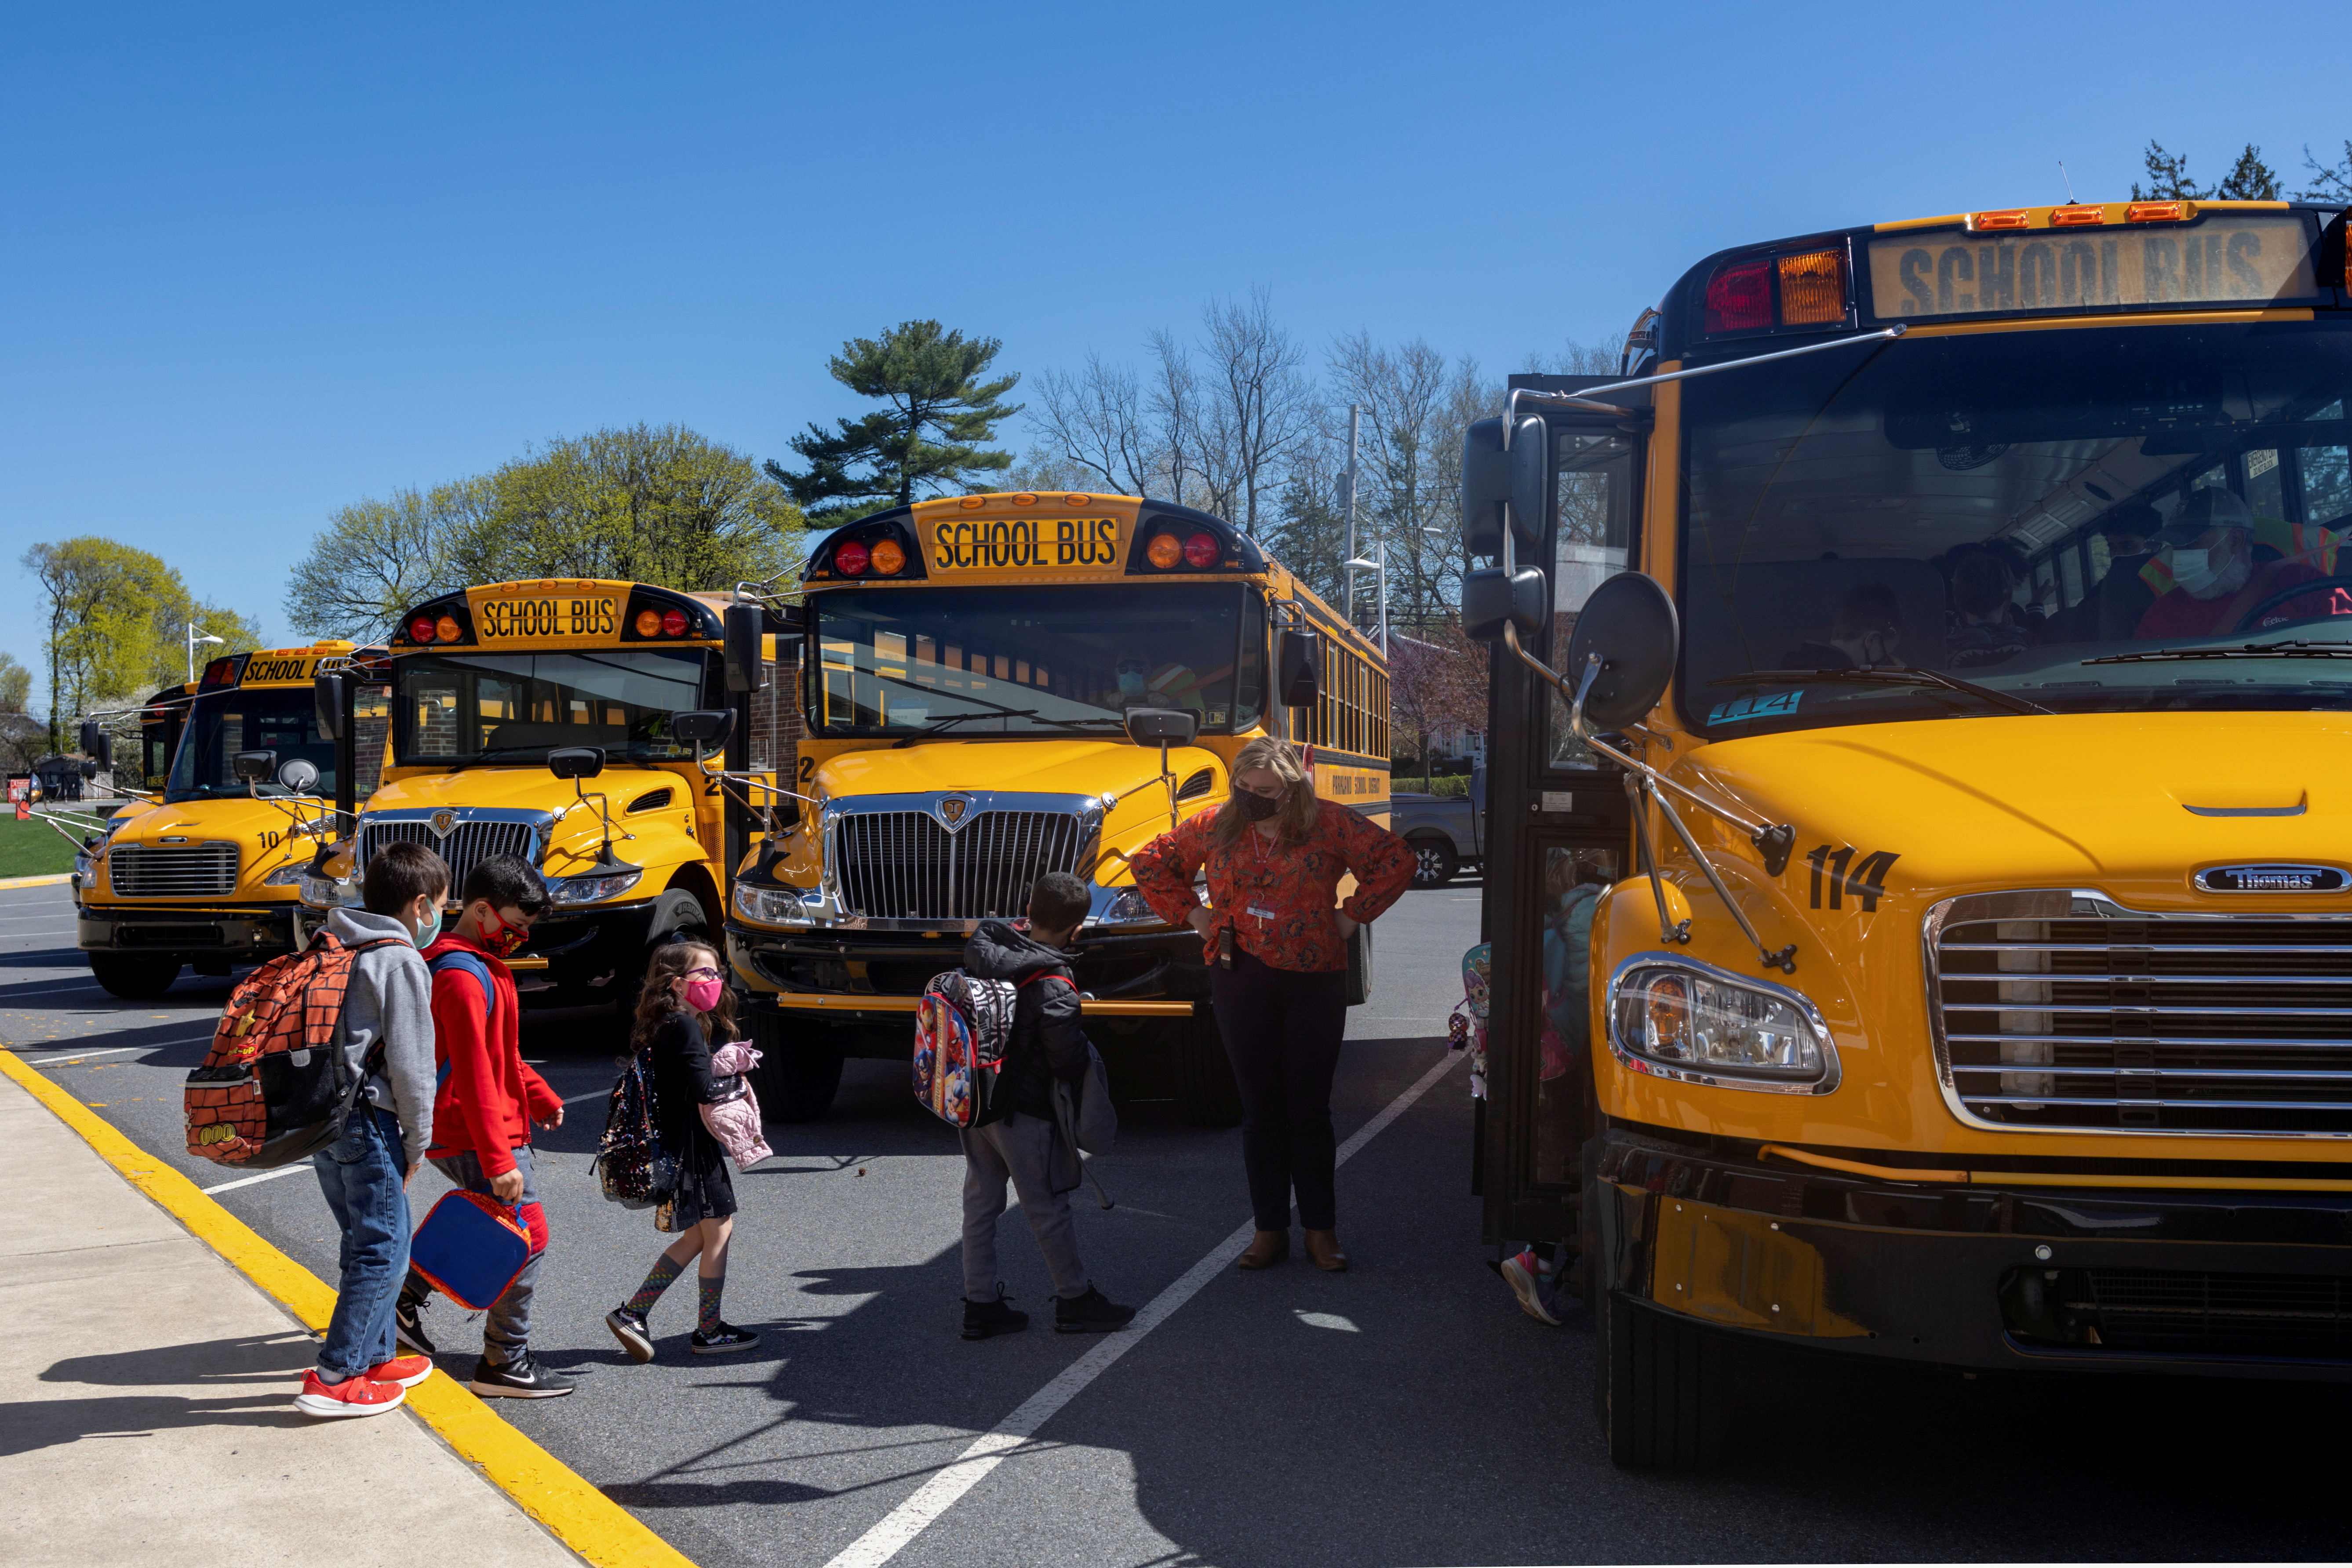 Students are led onto the bus after the school day ends at Kratzer Elementary School in Allentown, Pennsylvania, U.S., April 13, 2021.  REUTERS/Hannah Beier